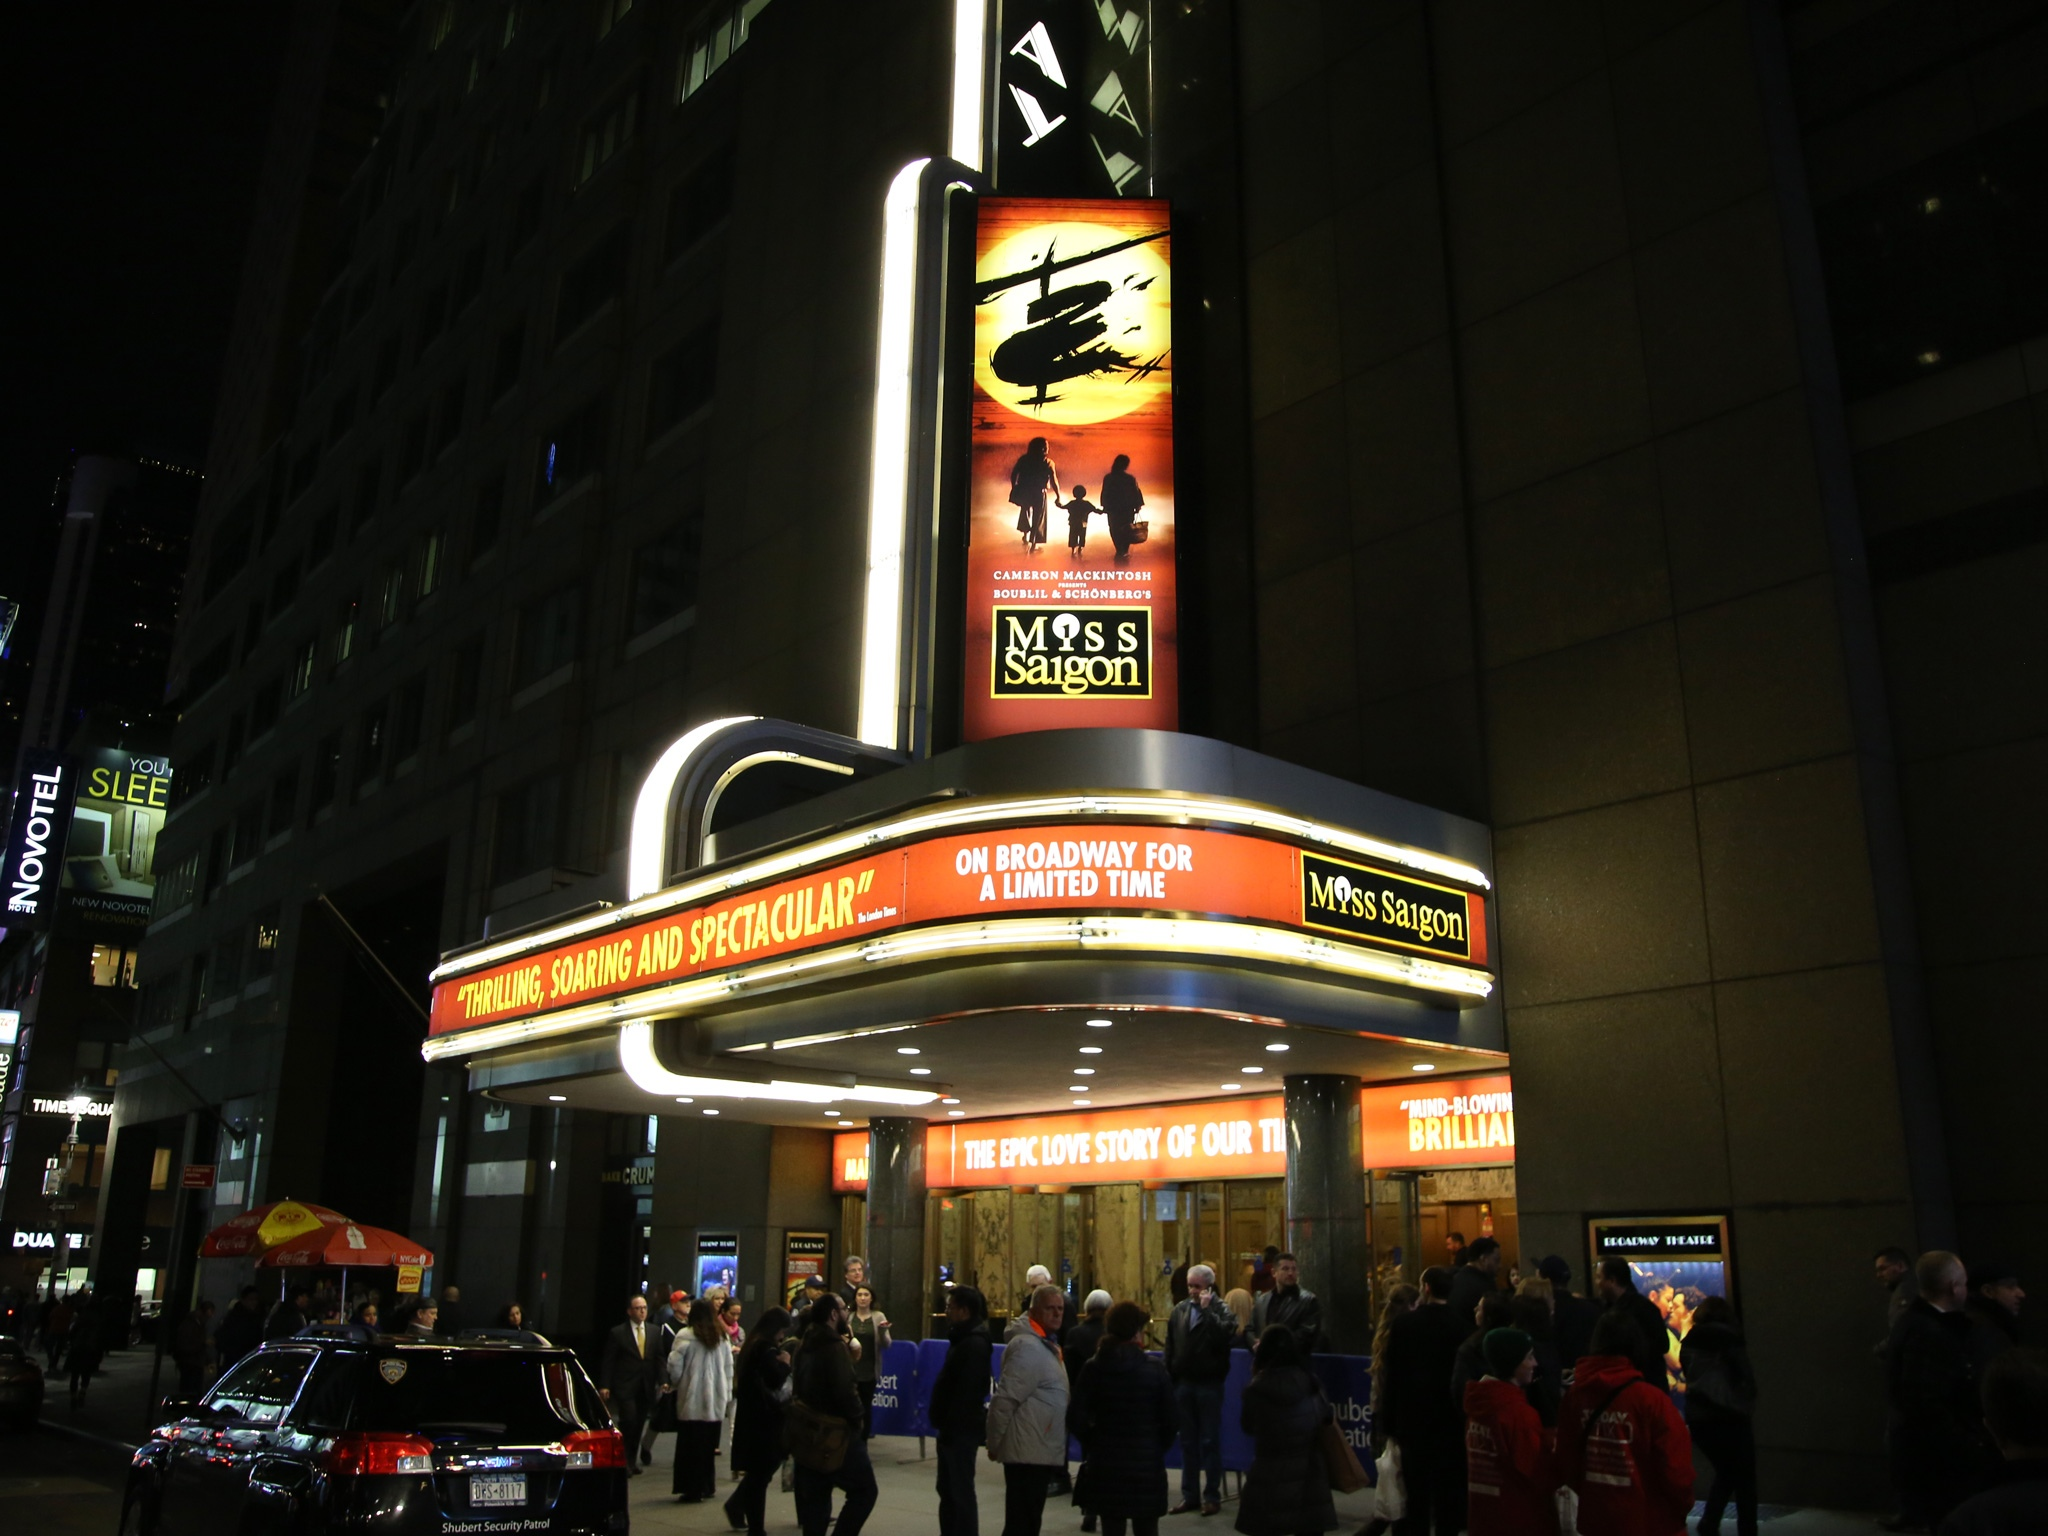 Misssaigon Broadway Theatre Marquee Night Time Shot